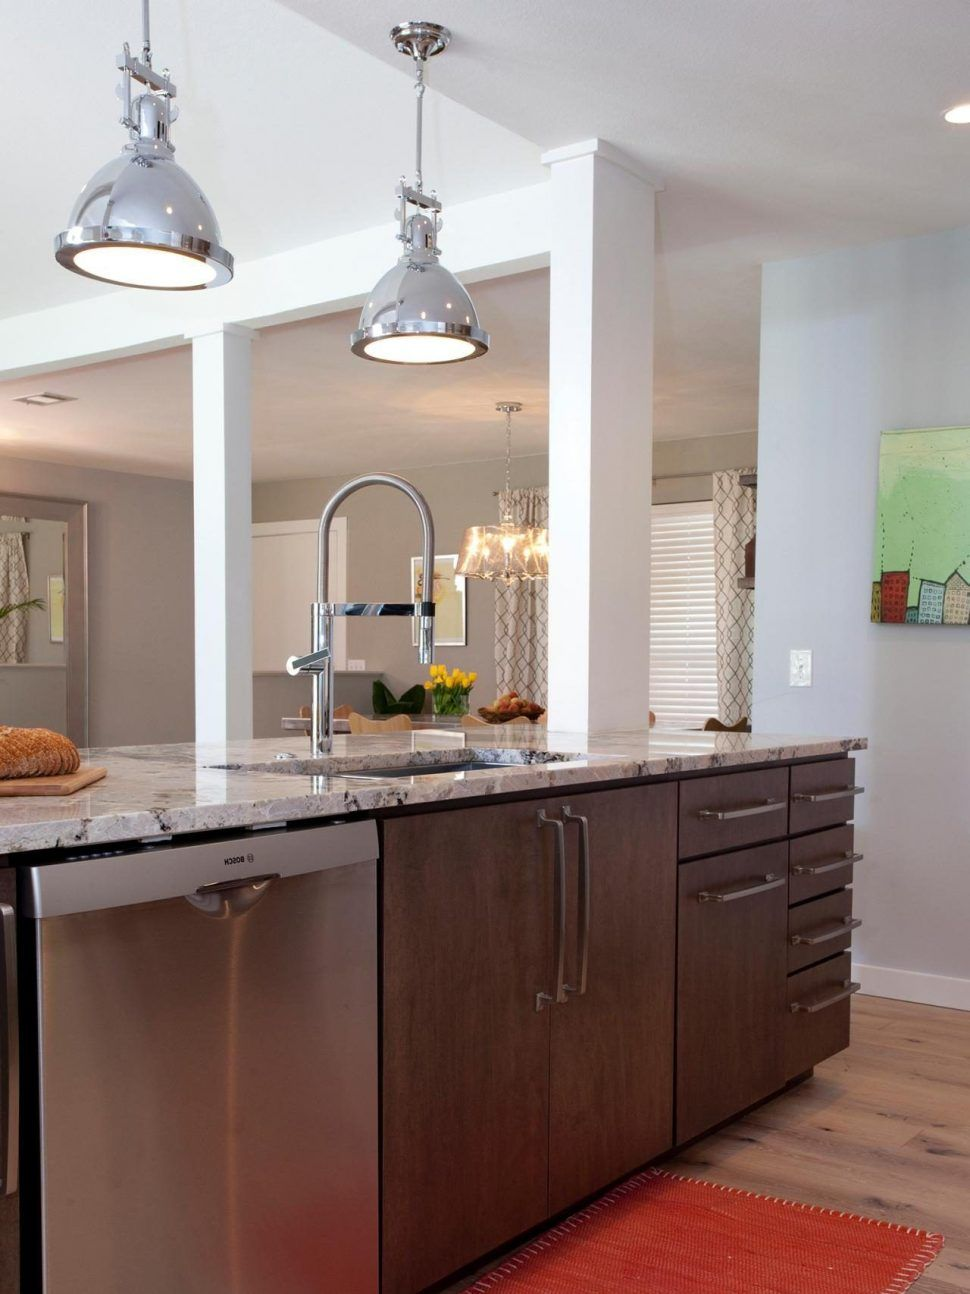 9 Modern Small Kitchen Ideas That Will Give a Big Impact on Your ...